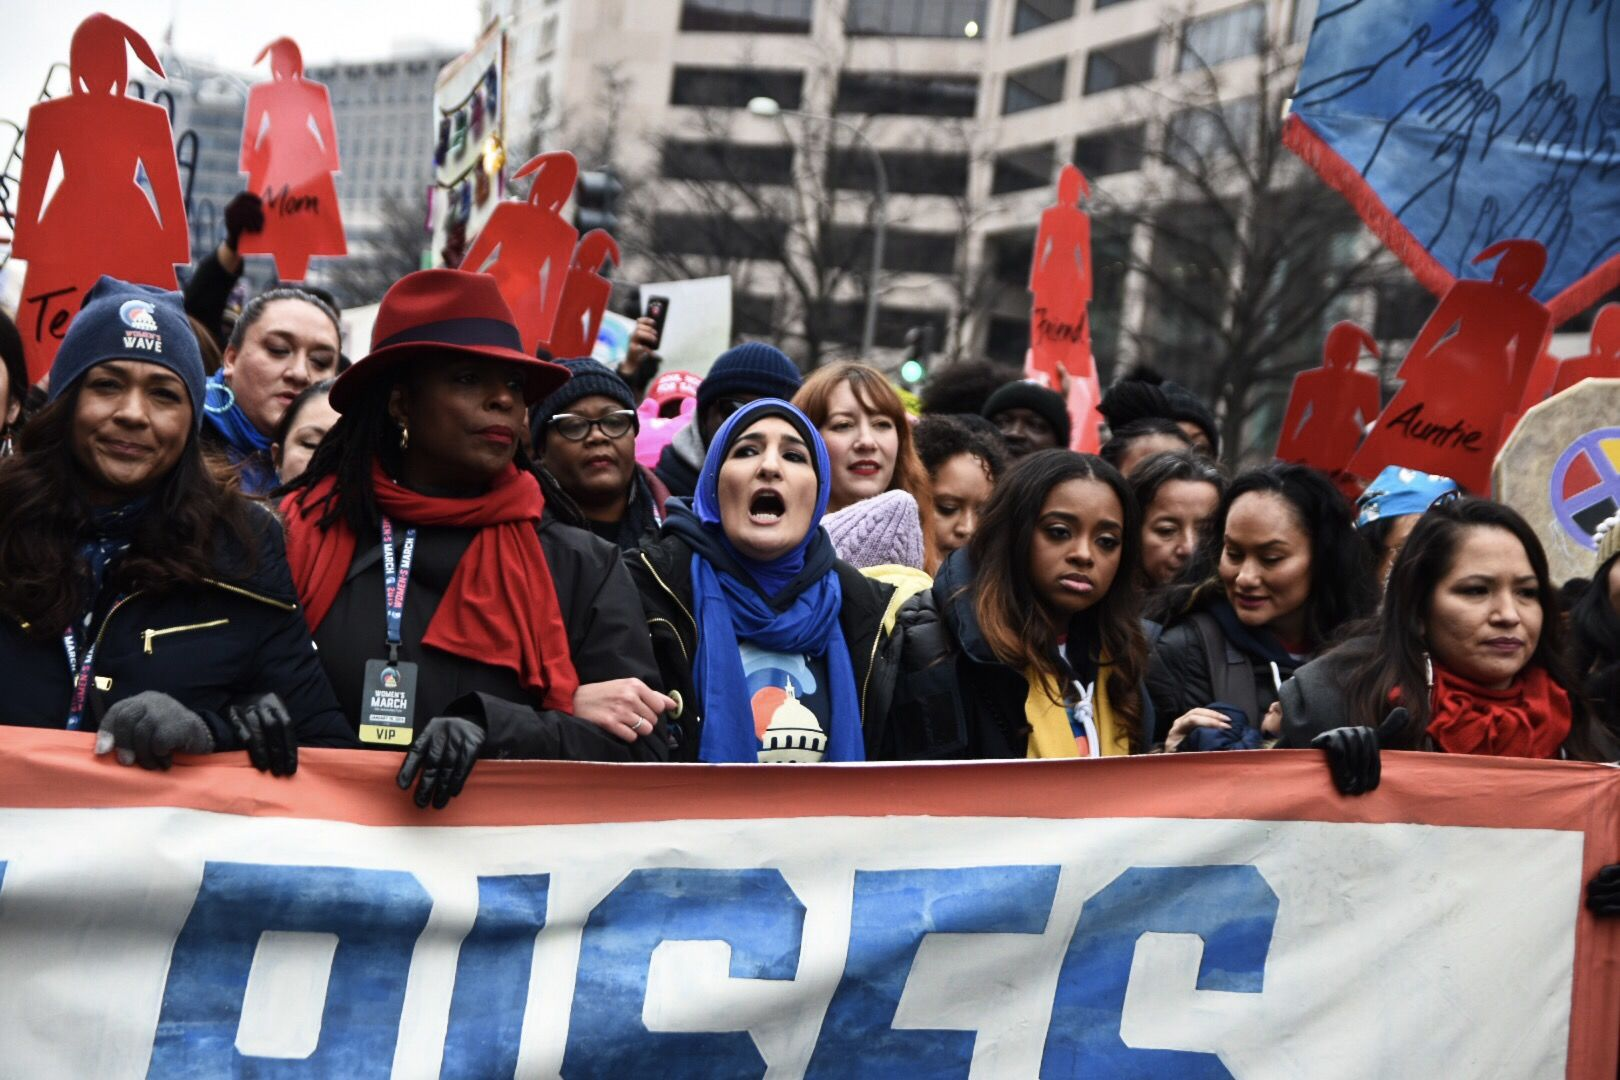 Women's March organizers Linda Sarsour (center), Tamika Mallory and Bob Bland lead a chant behind a banner at the front of the Women's March procession before the start of the march near the Trump International Hotel. (WTOP/Alejandro Alvarez)